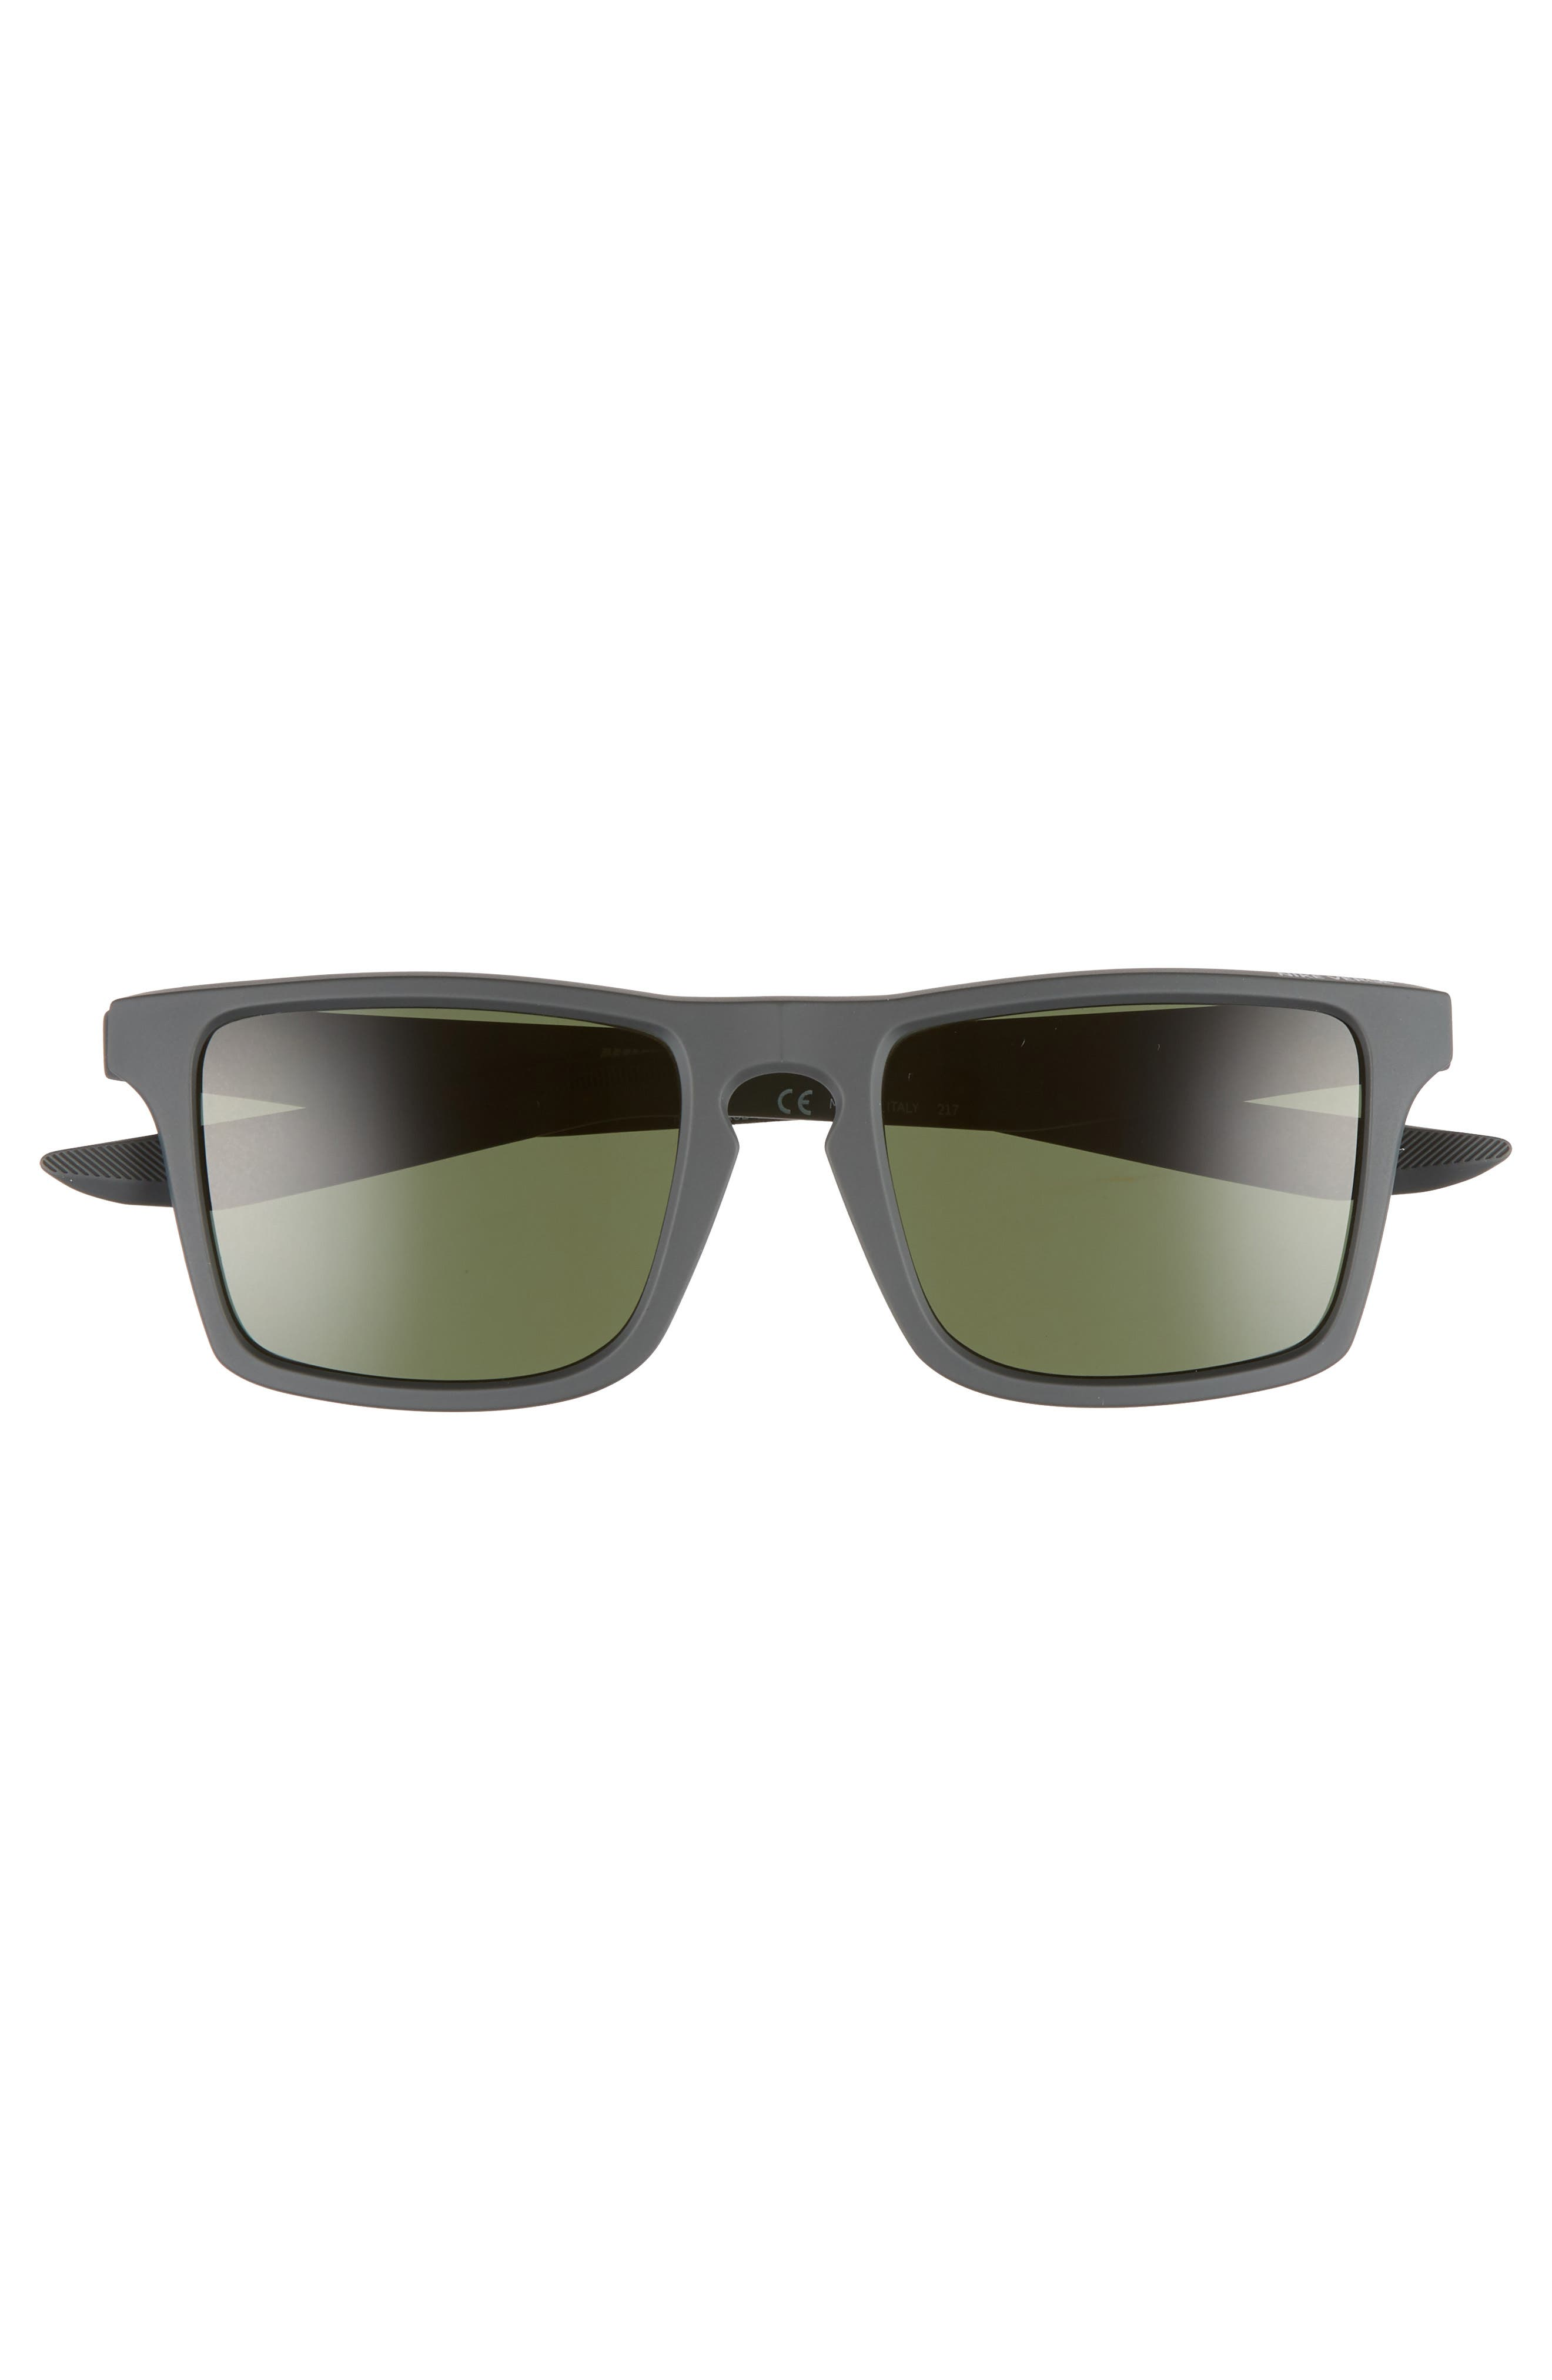 Verge 52mm Sunglasses,                             Alternate thumbnail 2, color,                             Anthracite/ Cool Grey/ Green